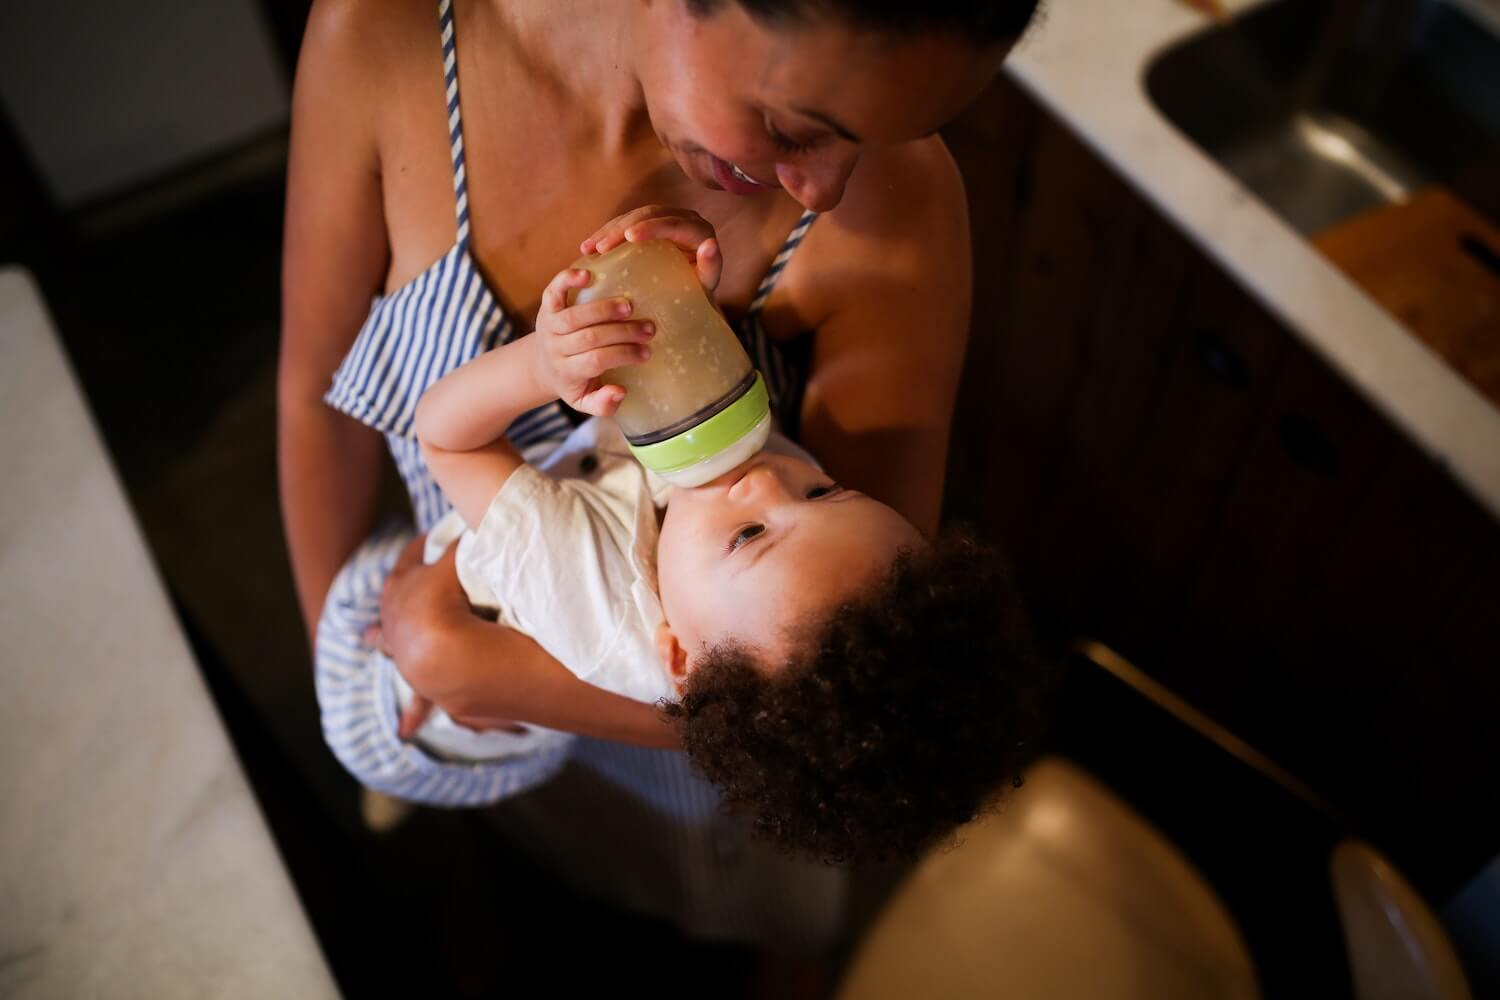 Baby Formula: What to Look For, What to Avoid and When to Use It